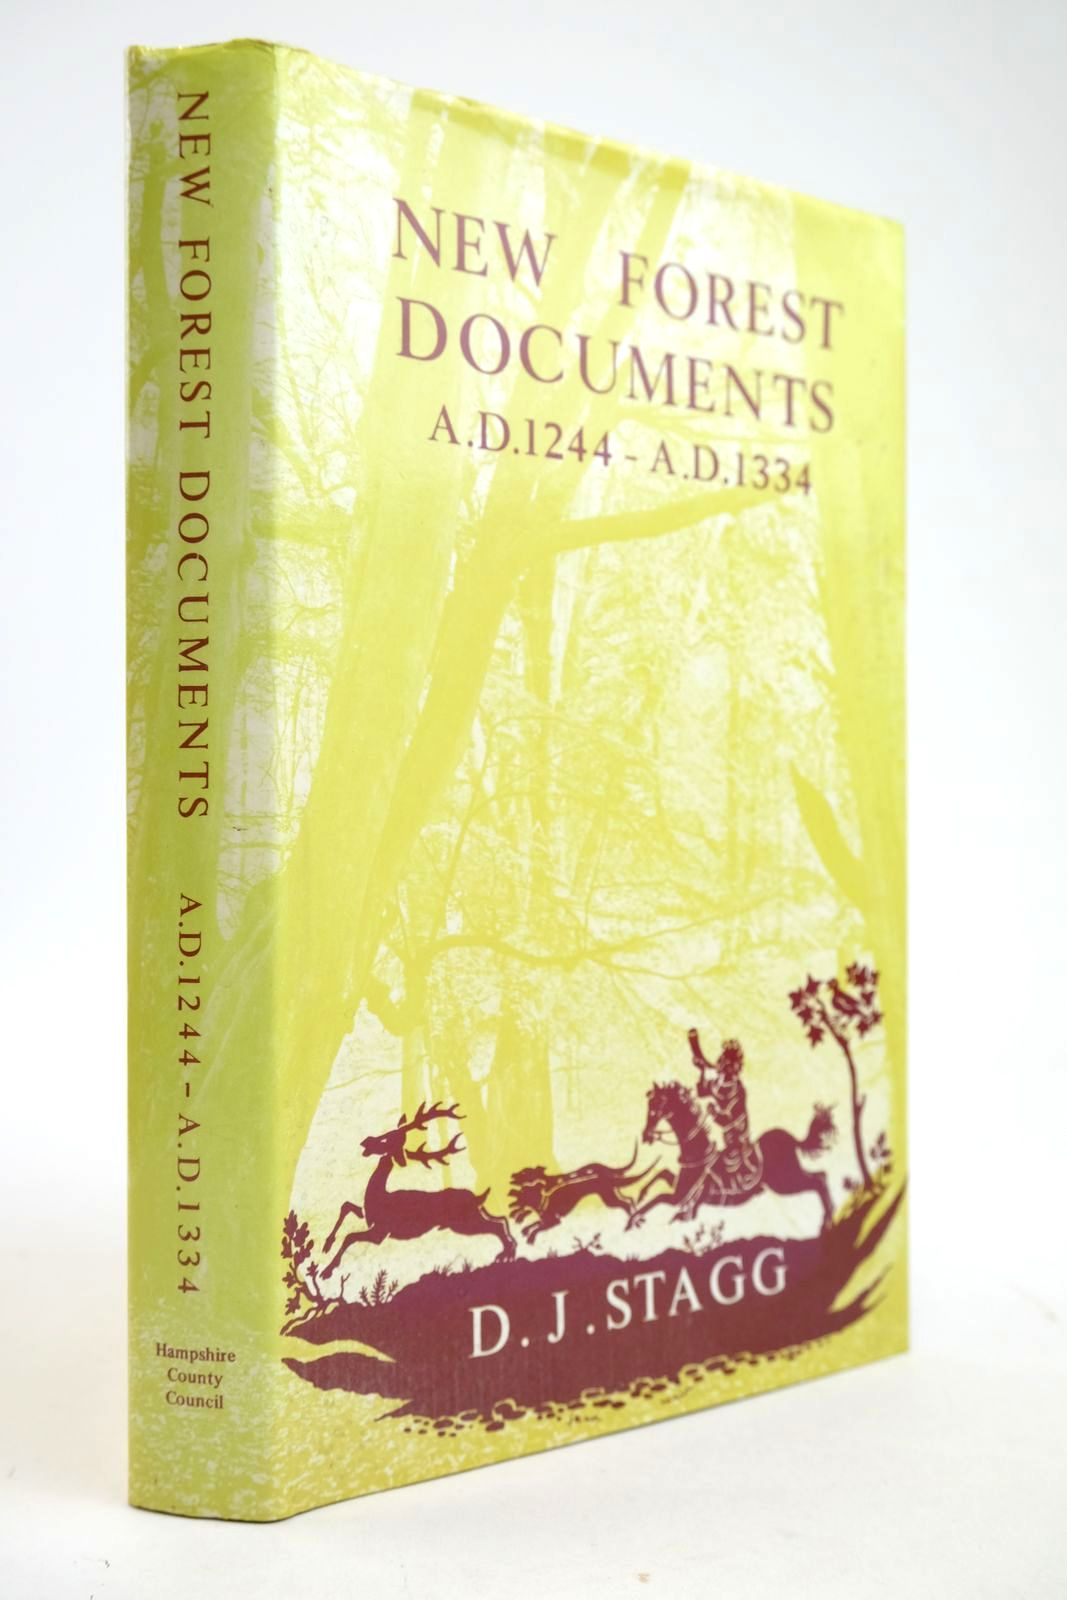 Photo of A CALENDAR OF NEW FOREST DOCUMENTS 1244-1334 written by Stagg, D.J. published by Hampshire County Council (STOCK CODE: 2133346)  for sale by Stella & Rose's Books